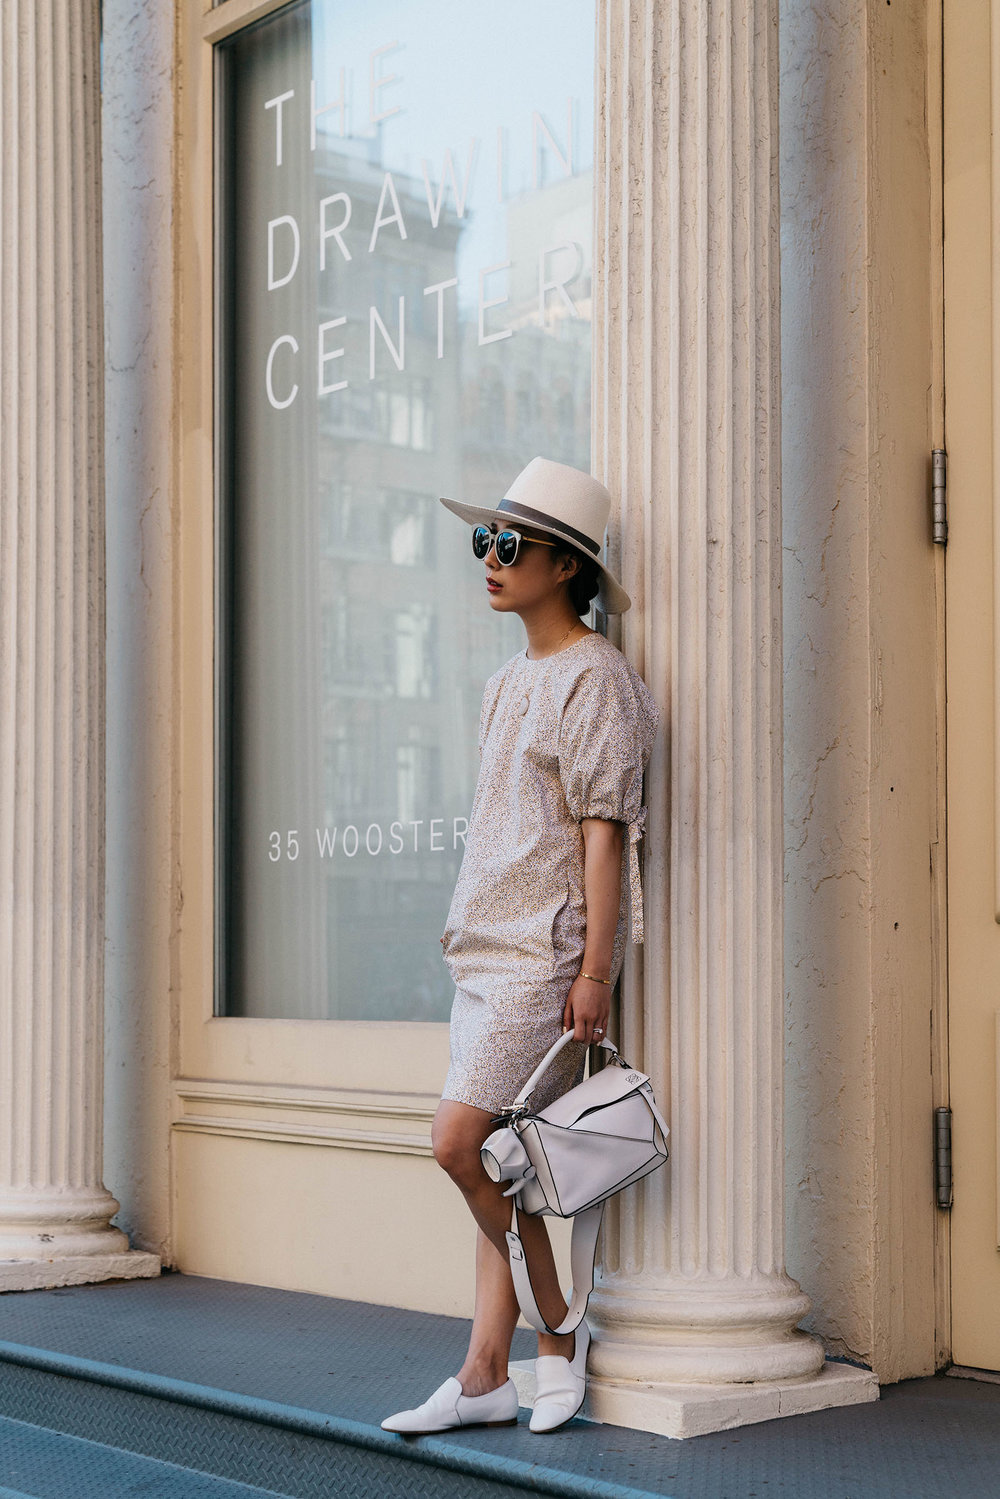 COS Dress, The Row Shoes, Loewe Bag and Keychain, Janessa Leone Hat